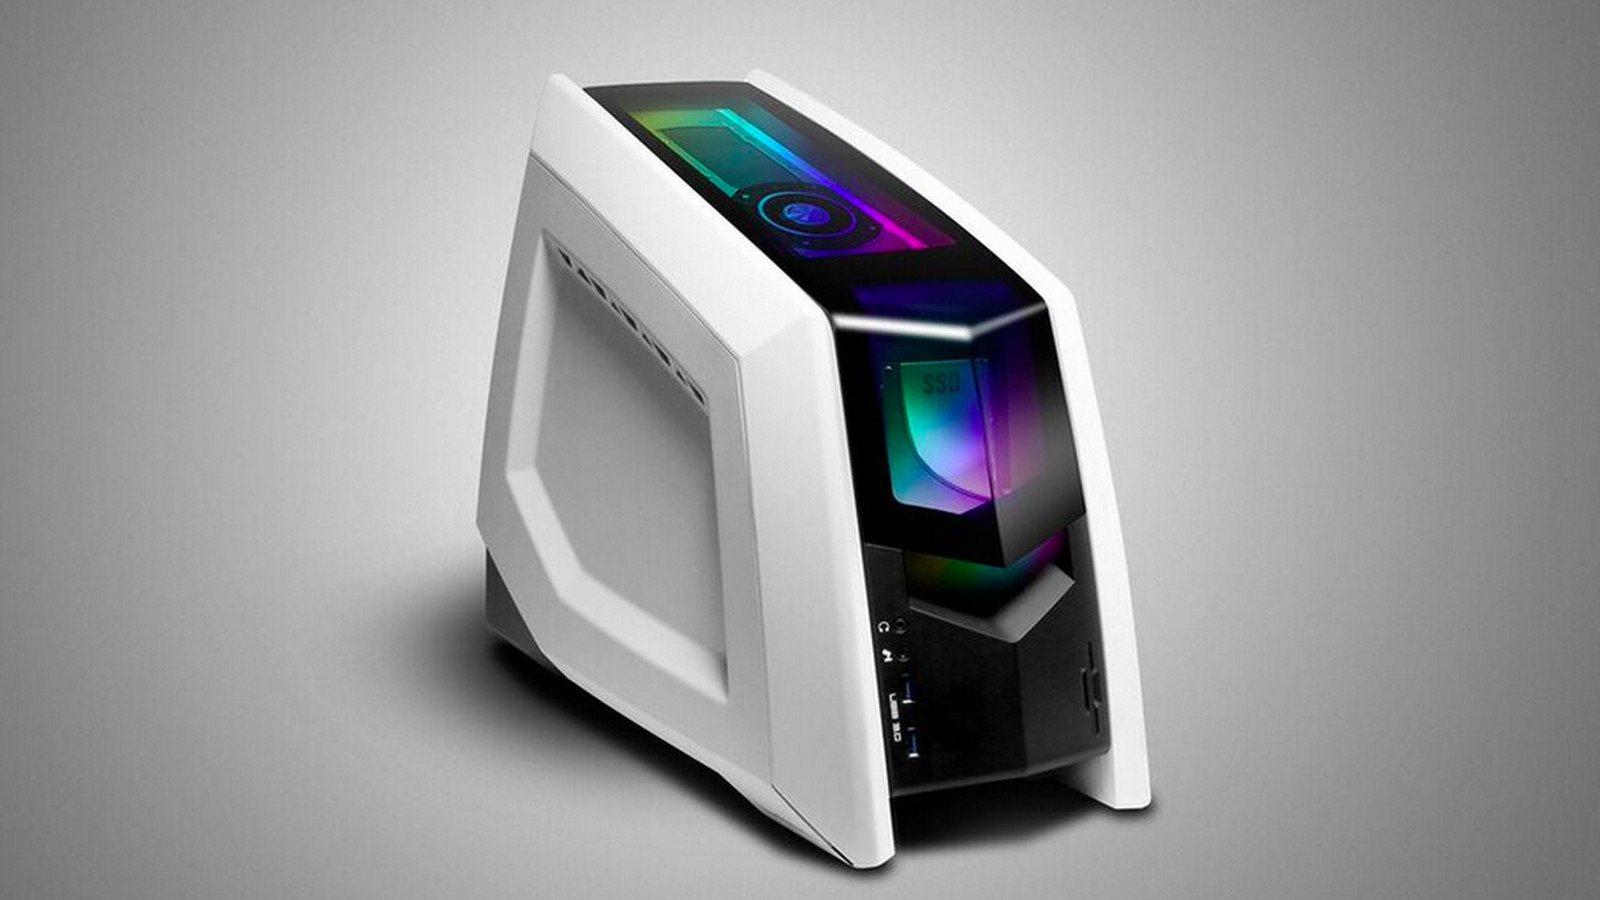 How do you create a gaming PC aimed at esports?